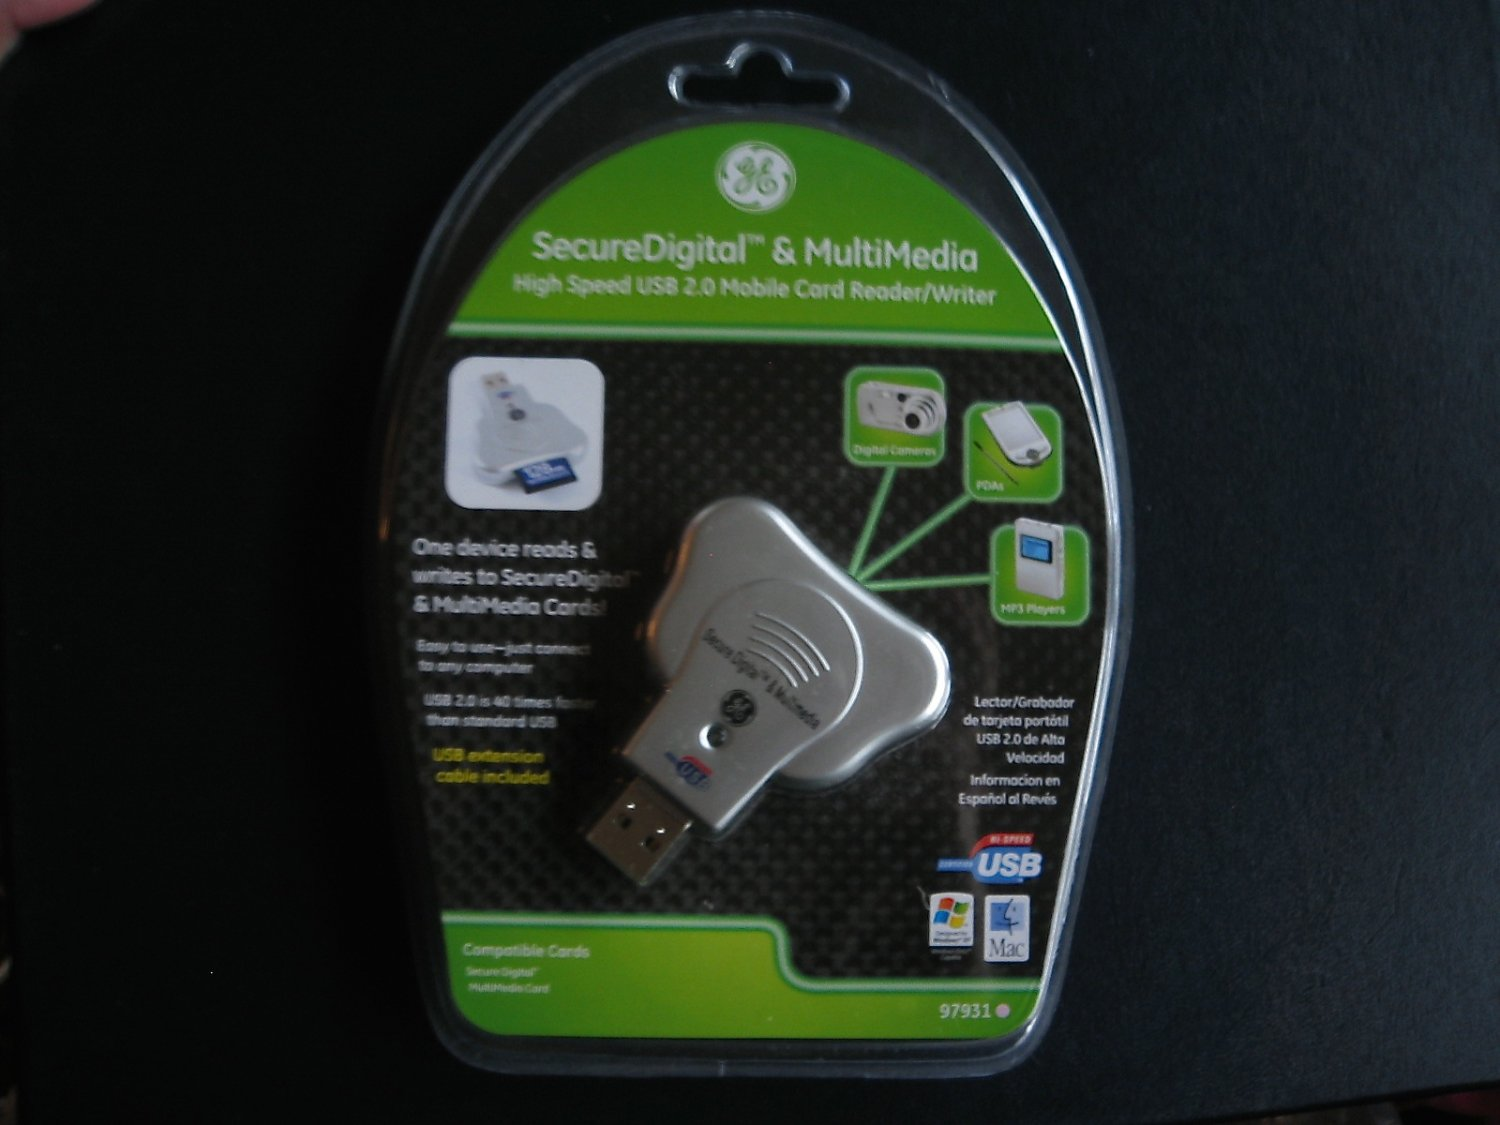 GE Secure Digital and Multimedia High Speed Mobile 2.0 Card Reader Writer